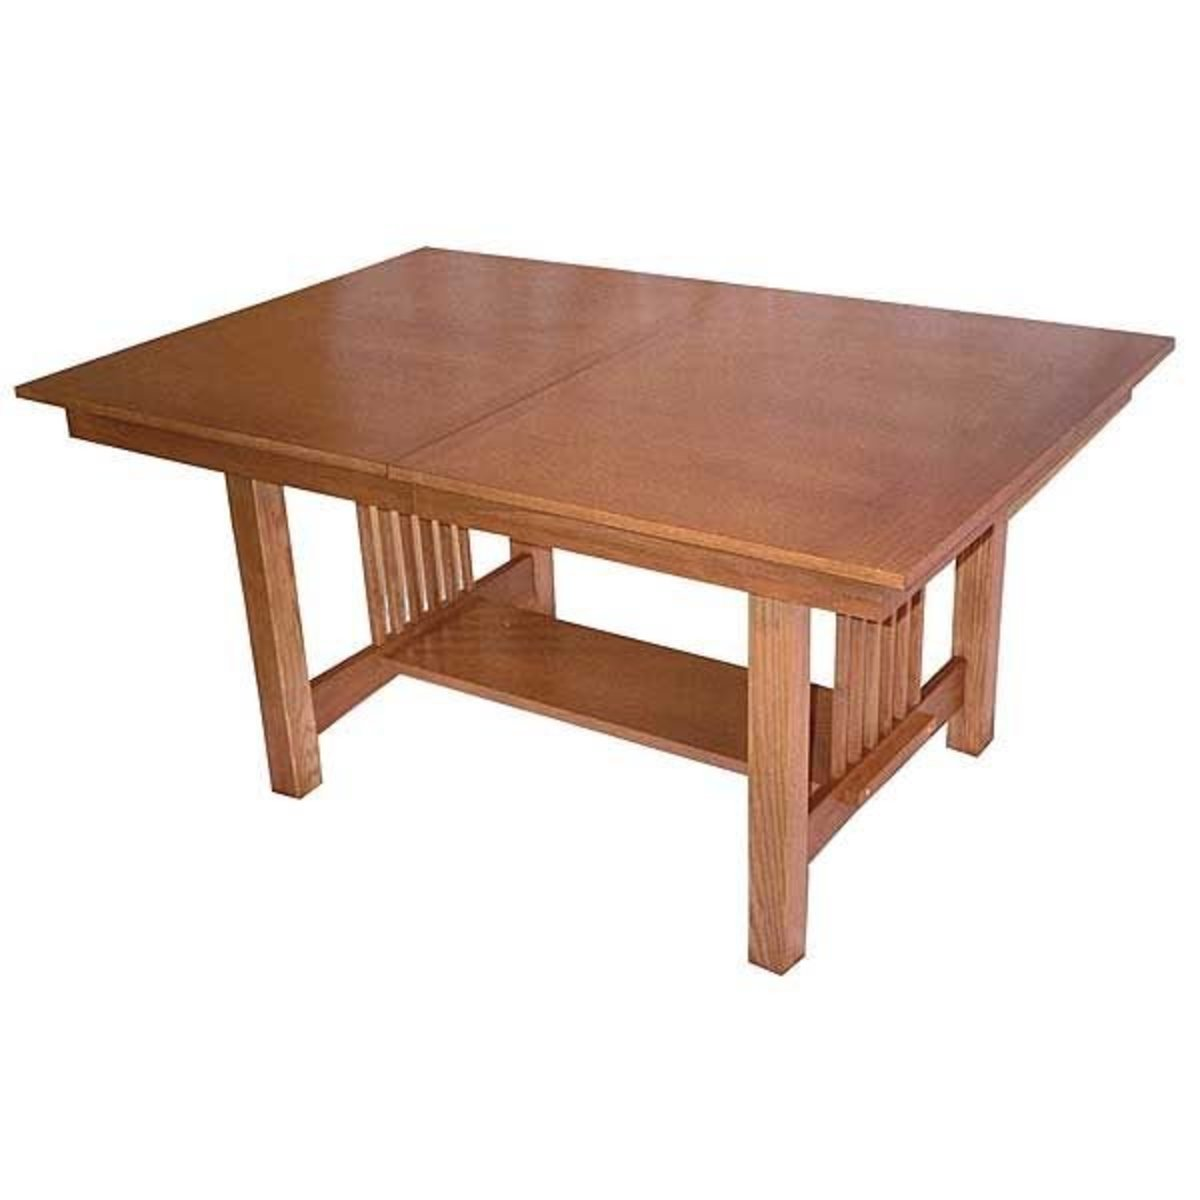 Charmant View A Larger Image Of Woodworking Project Paper Plan To Build Mission  Style Dining Table,